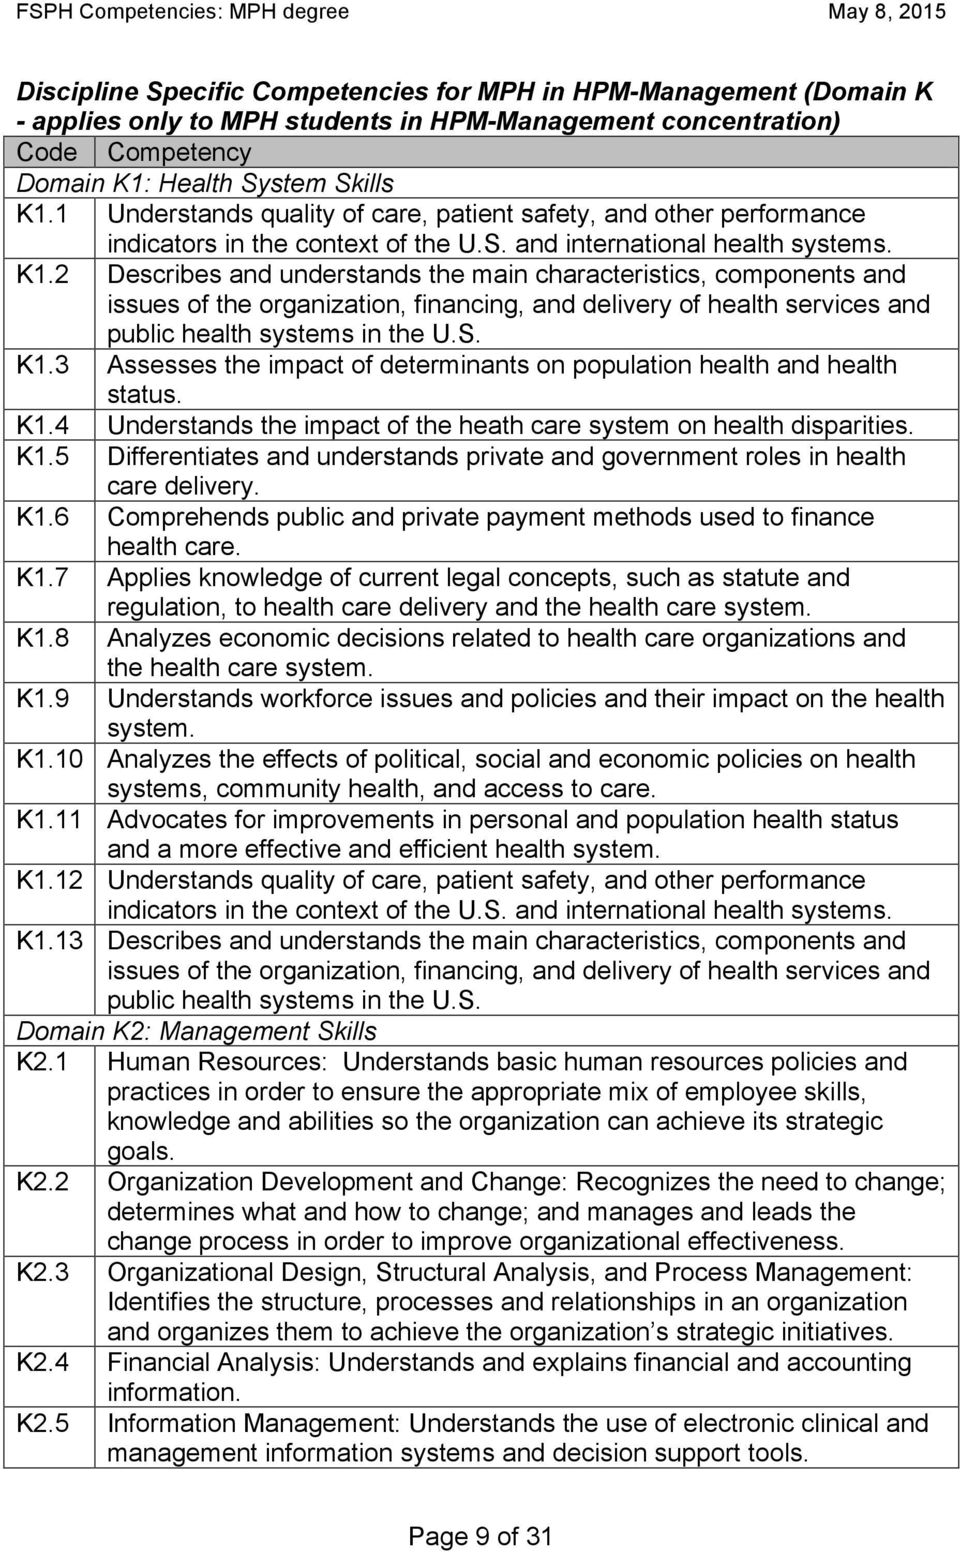 S. K1.3 Assesses the impact of determinants on population health and health status. K1.4 Understands the impact of the heath care system on health disparities. K1.5 Differentiates and understands private and government roles in health care delivery.